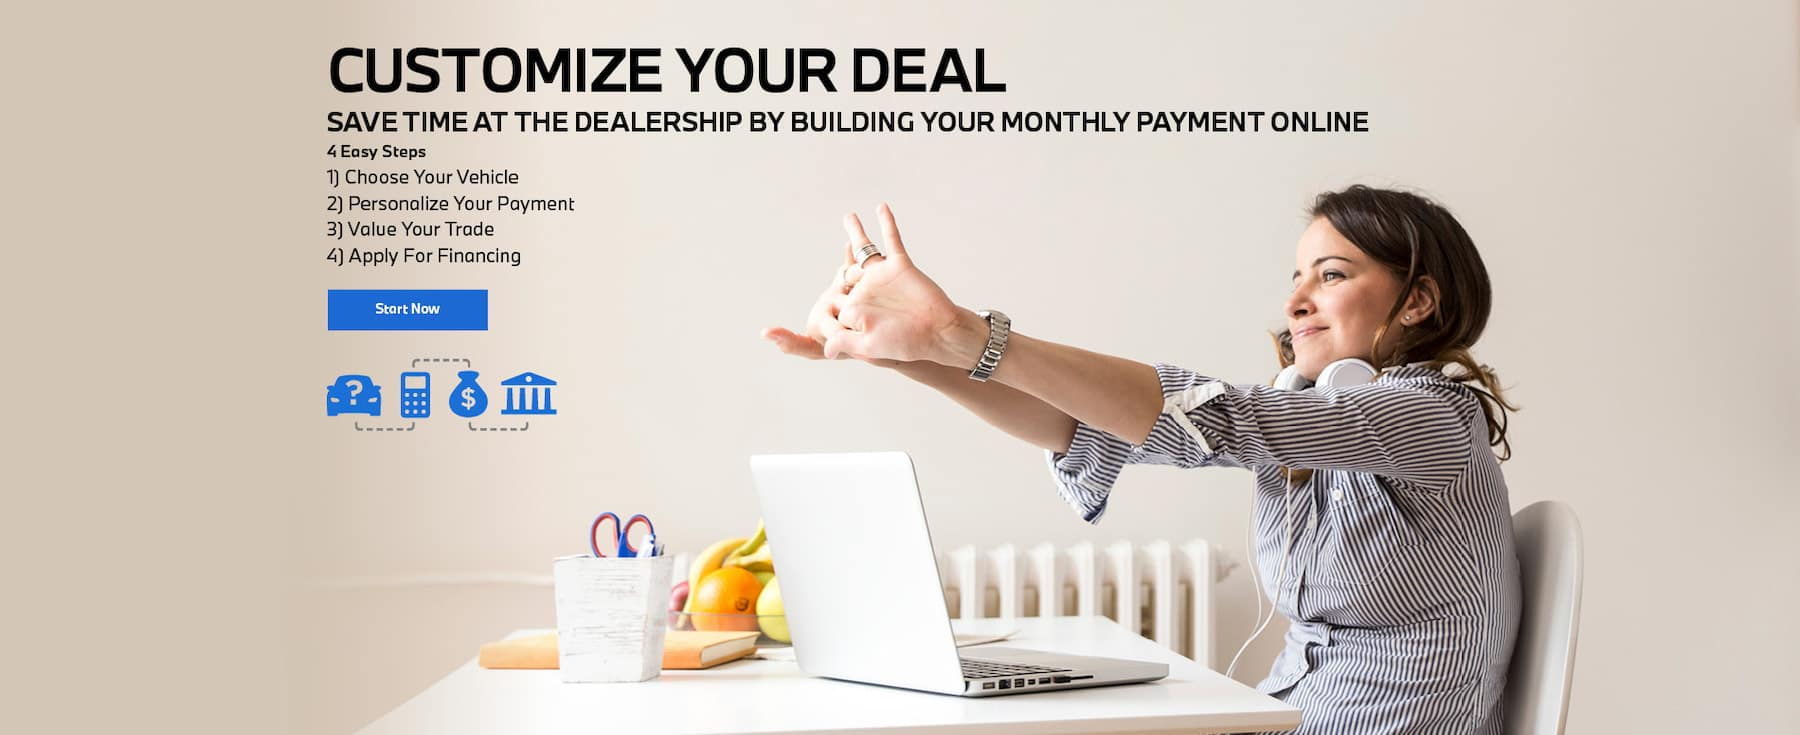 Customize Your Deal With Our Calculator Payments